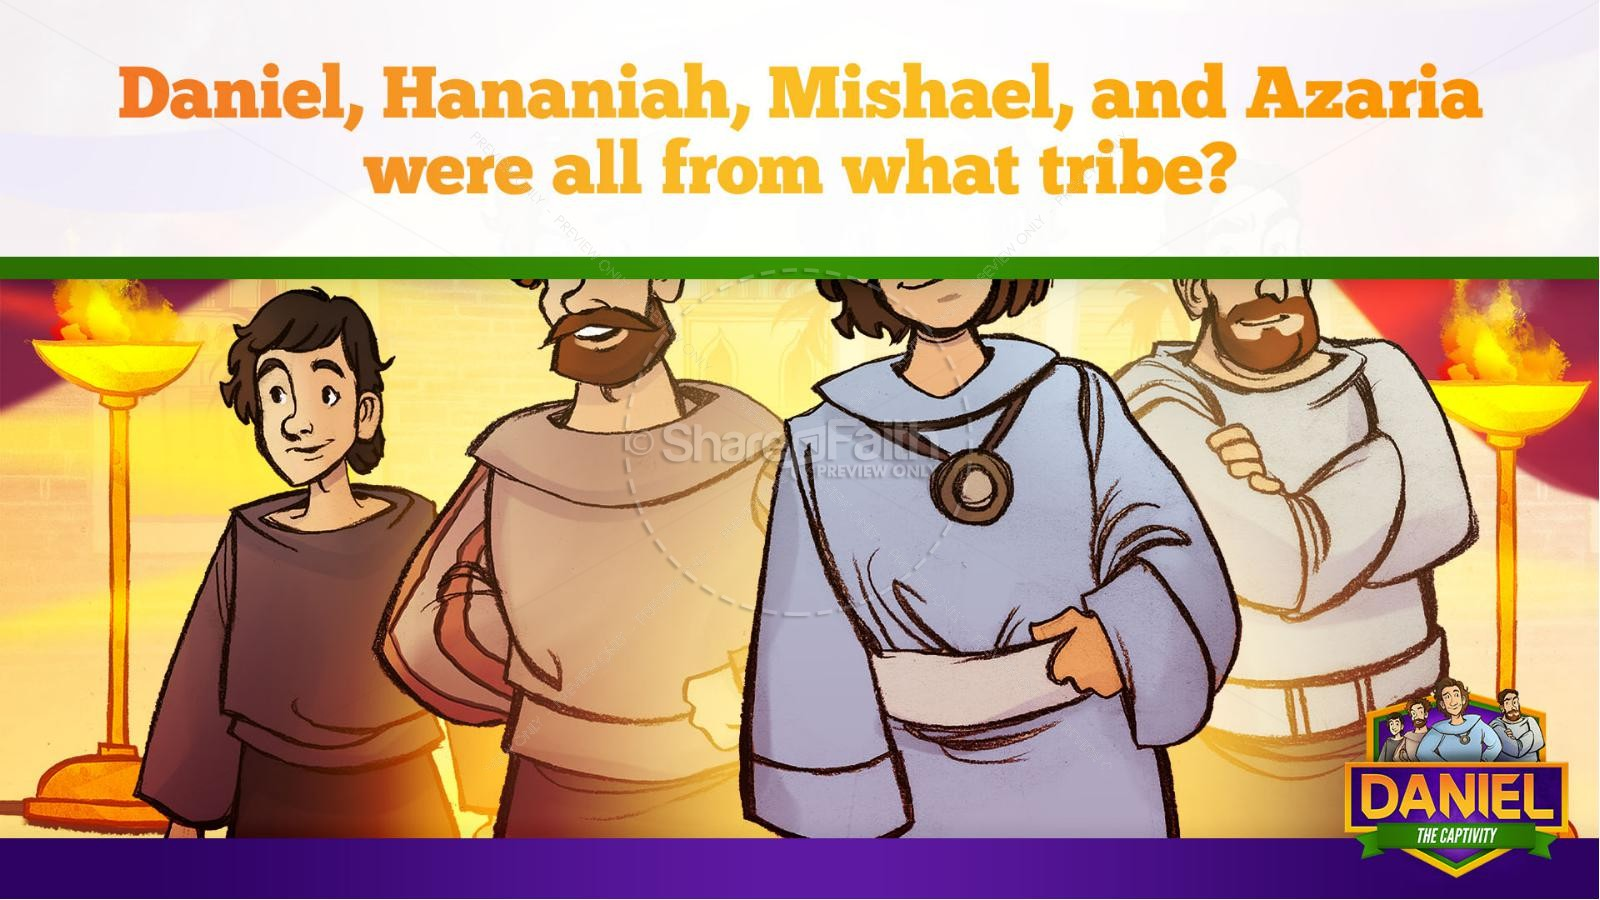 Daniel 1 The Captivity Kids Bible Story | slide 19